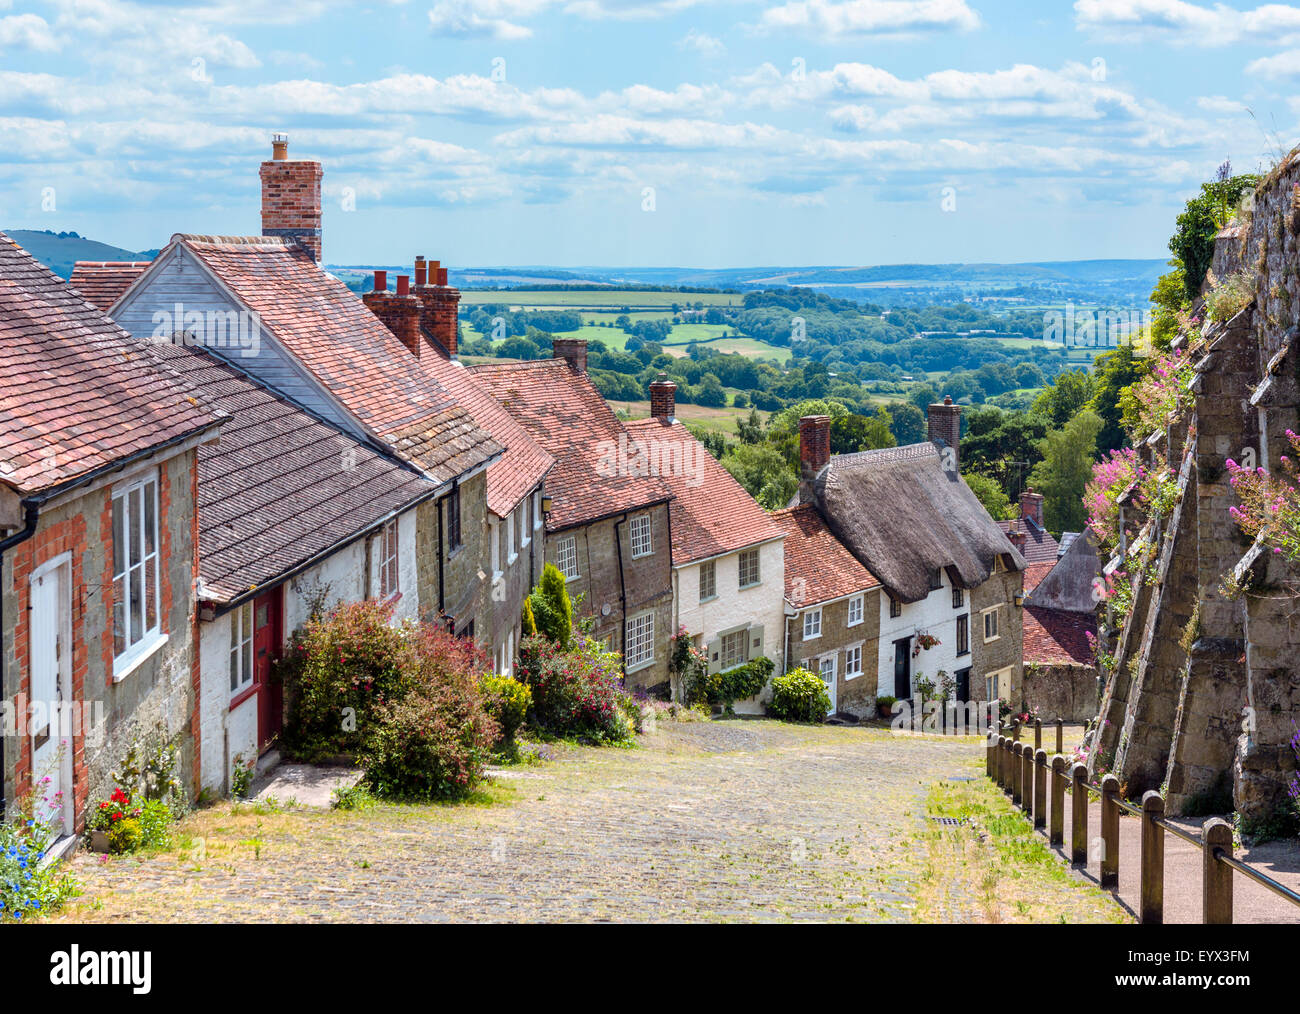 Gold Hill with the old abbey walls to the right, Shaftesbury, Dorset, England, UK - Stock Image